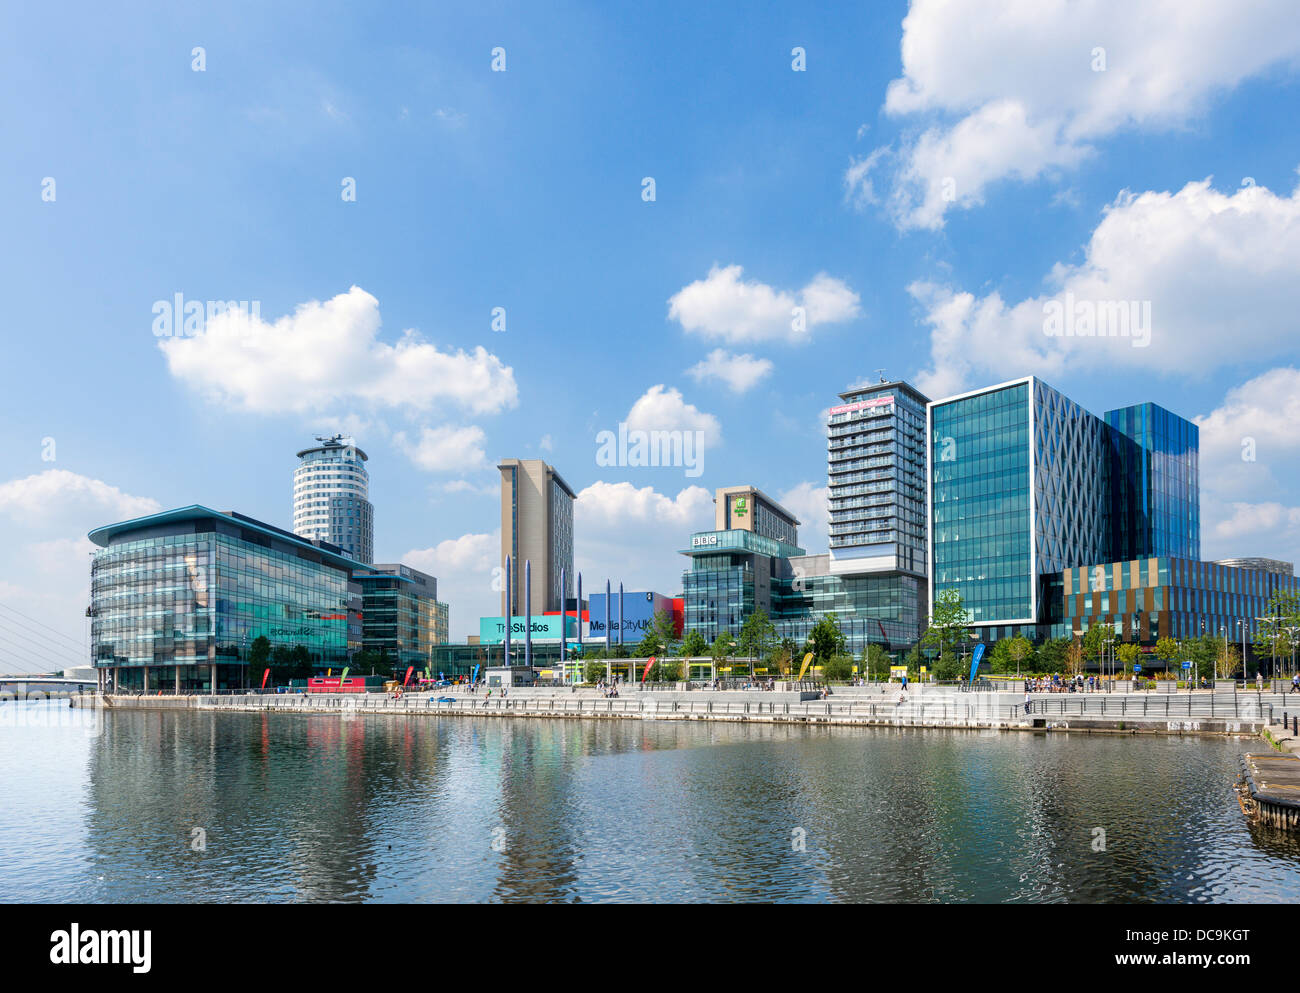 The BBC and other buildings at MediaCityUK, Salford Quays, Manchester, UK - Stock Image